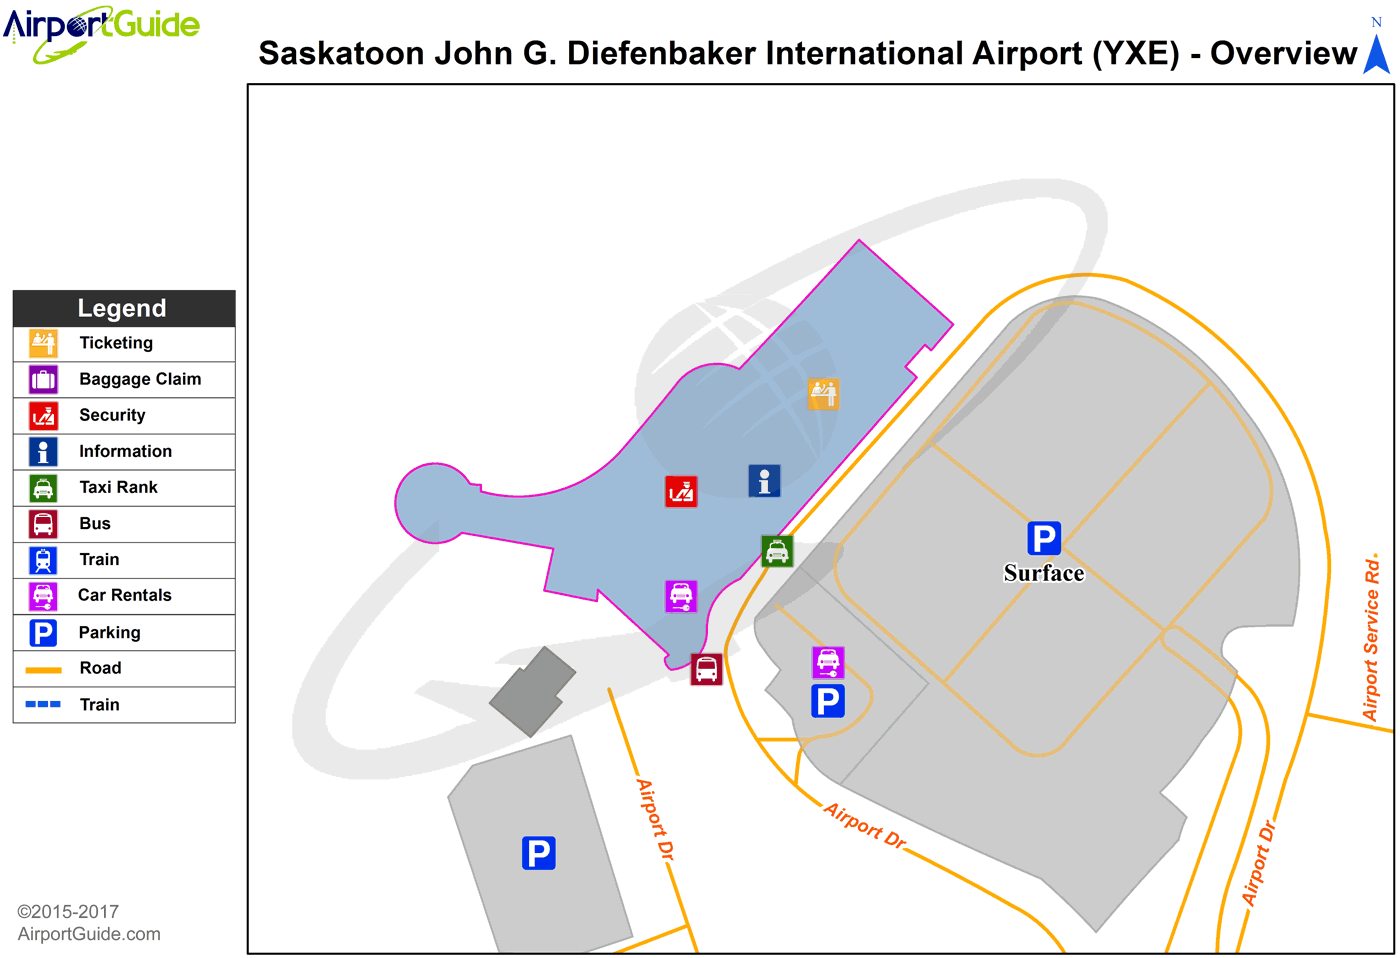 Saskatoon - Saskatoon John G. Diefenbaker International (YXE) Airport Terminal Map - Overview